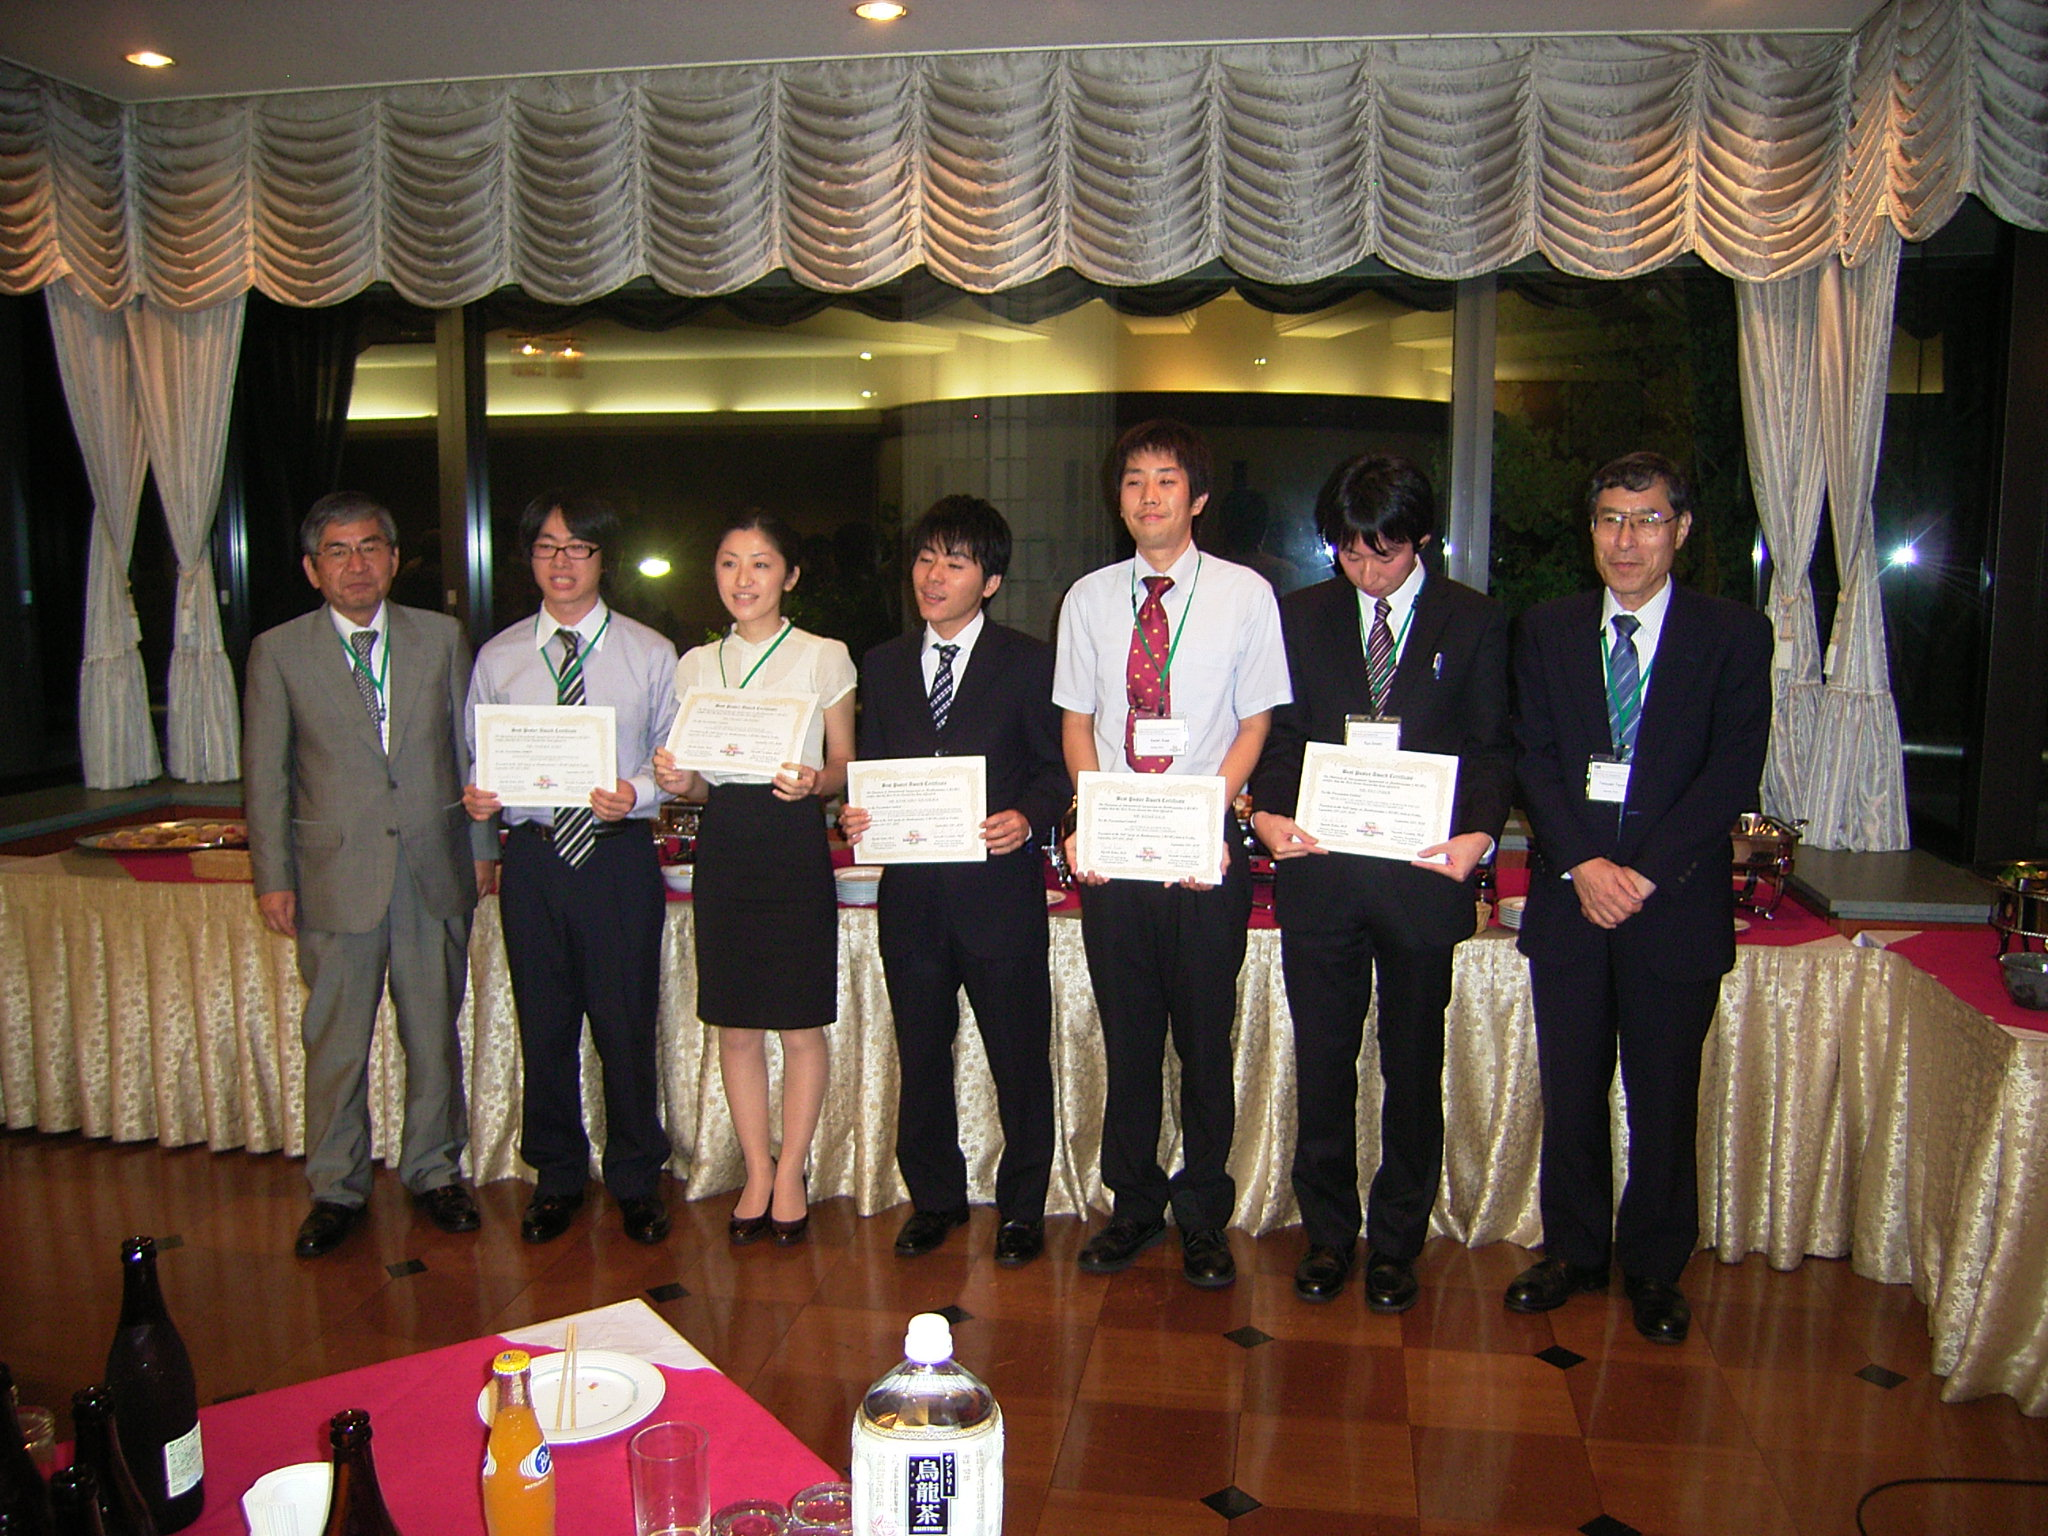 Poster Award Students in MSB8